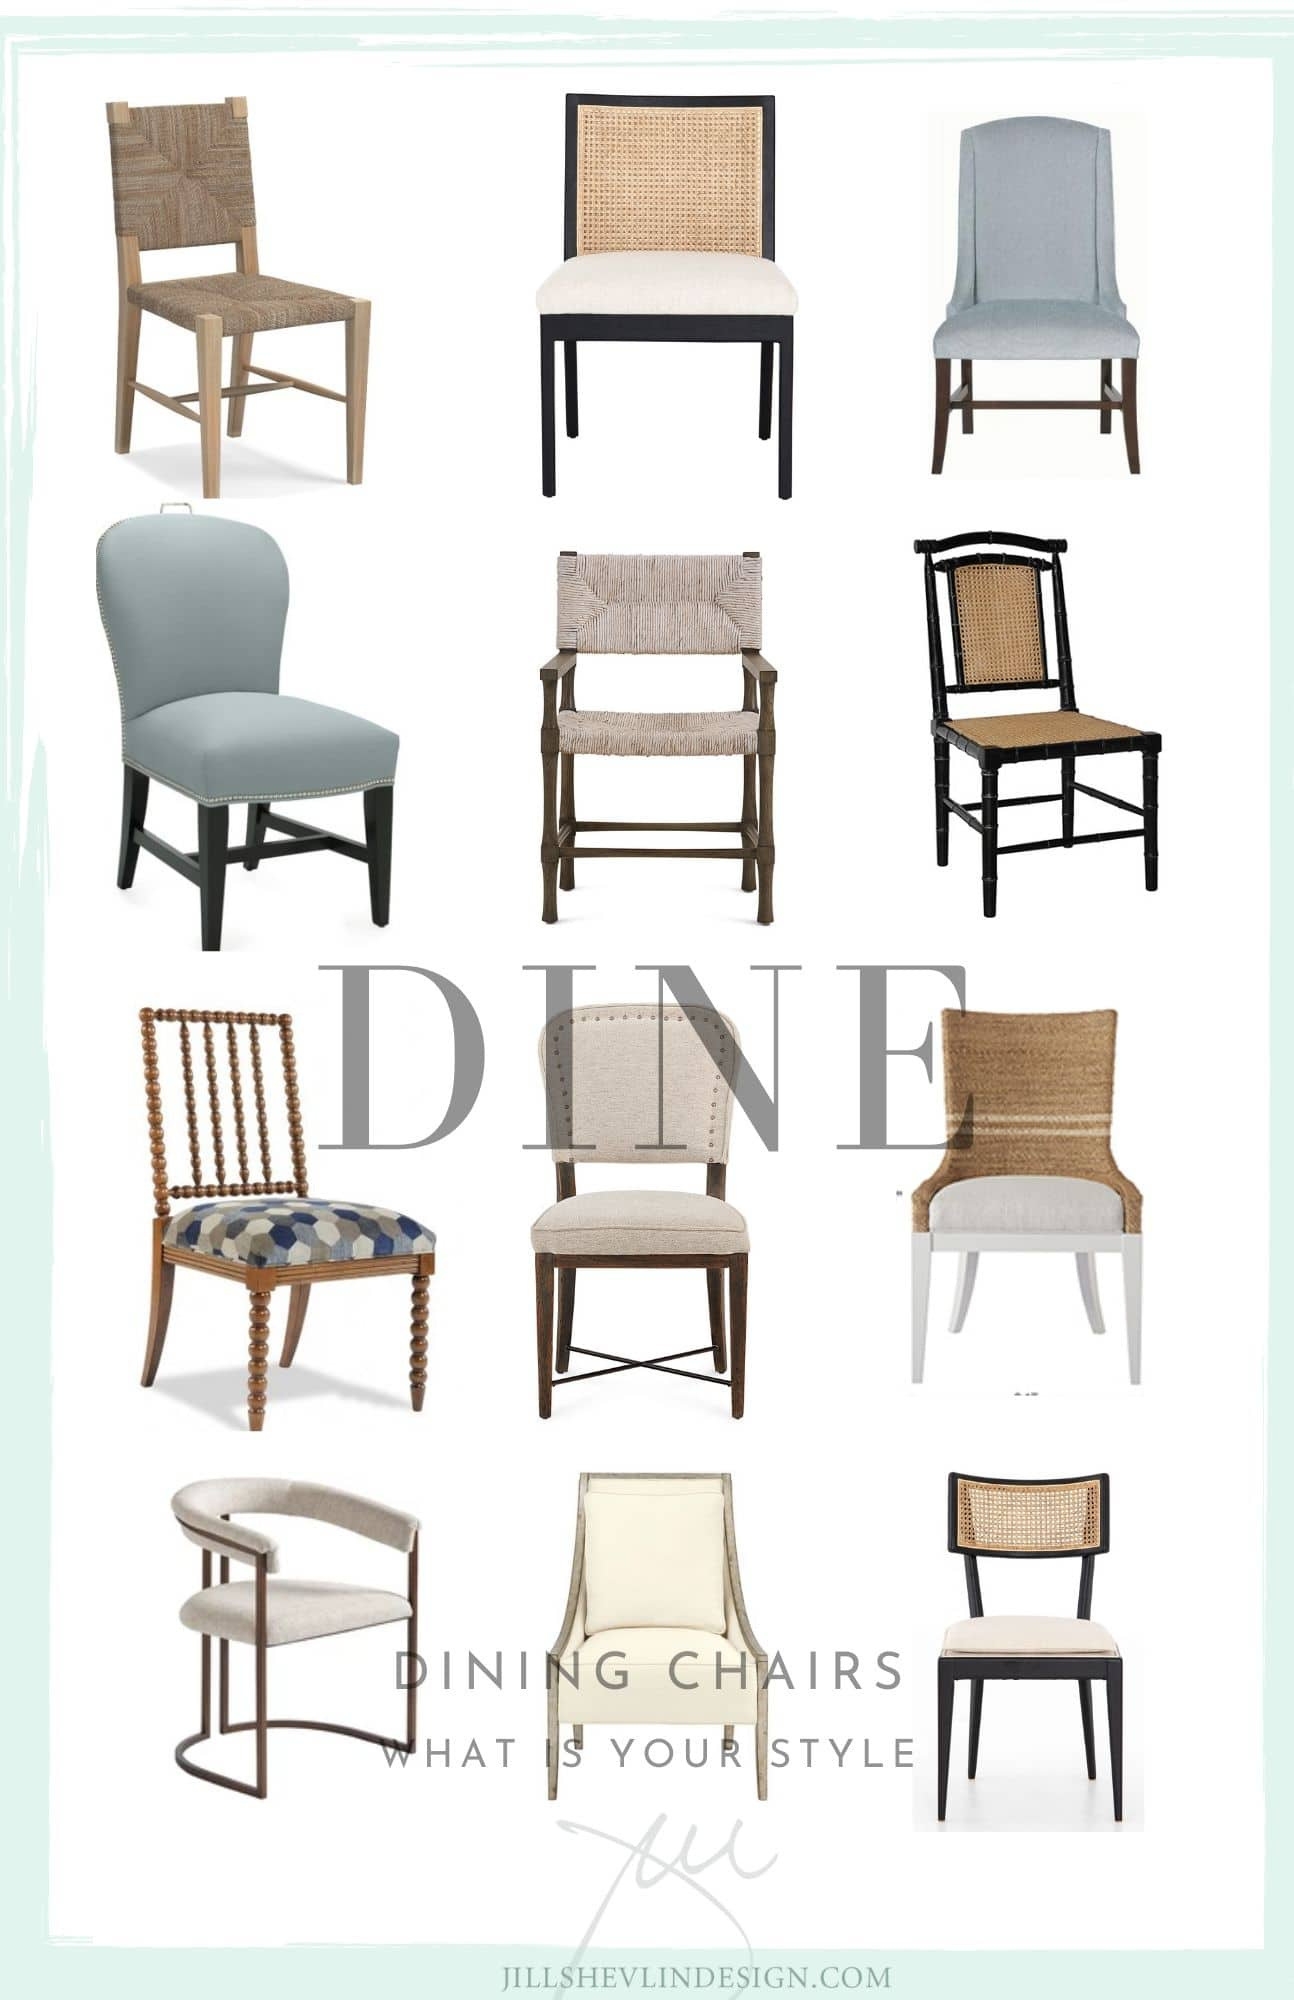 12 dining char styles jill shevlin design vero beach interior desinger home furnishings coastal modern home farmhouse home